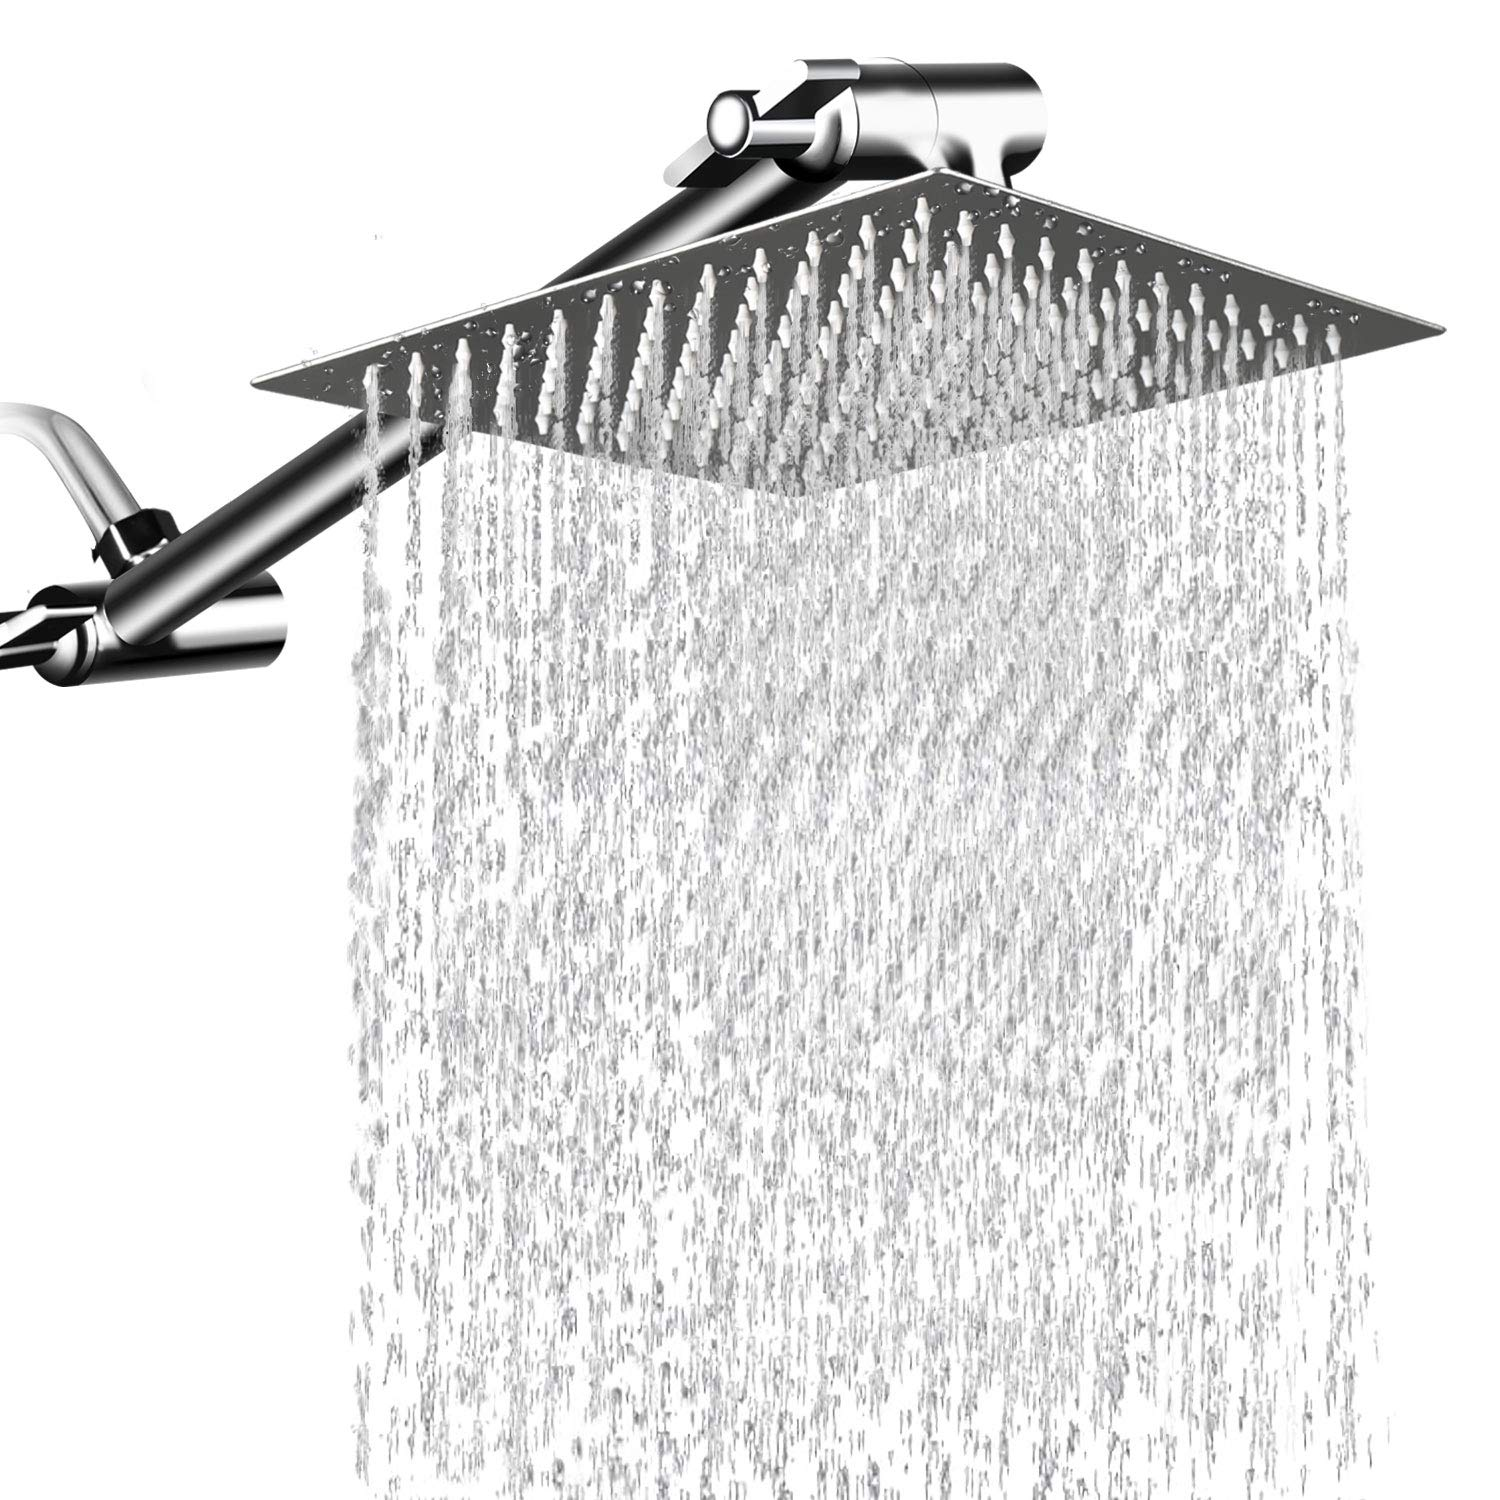 12'' Square Rain Showerhead with 11'' Adjustable Extension Arm, Large Stainless Steel High Pressure Shower Head,Ultra Thin Rainfall Bath Shower with Silicone Nozzle Easy to Clean and Install